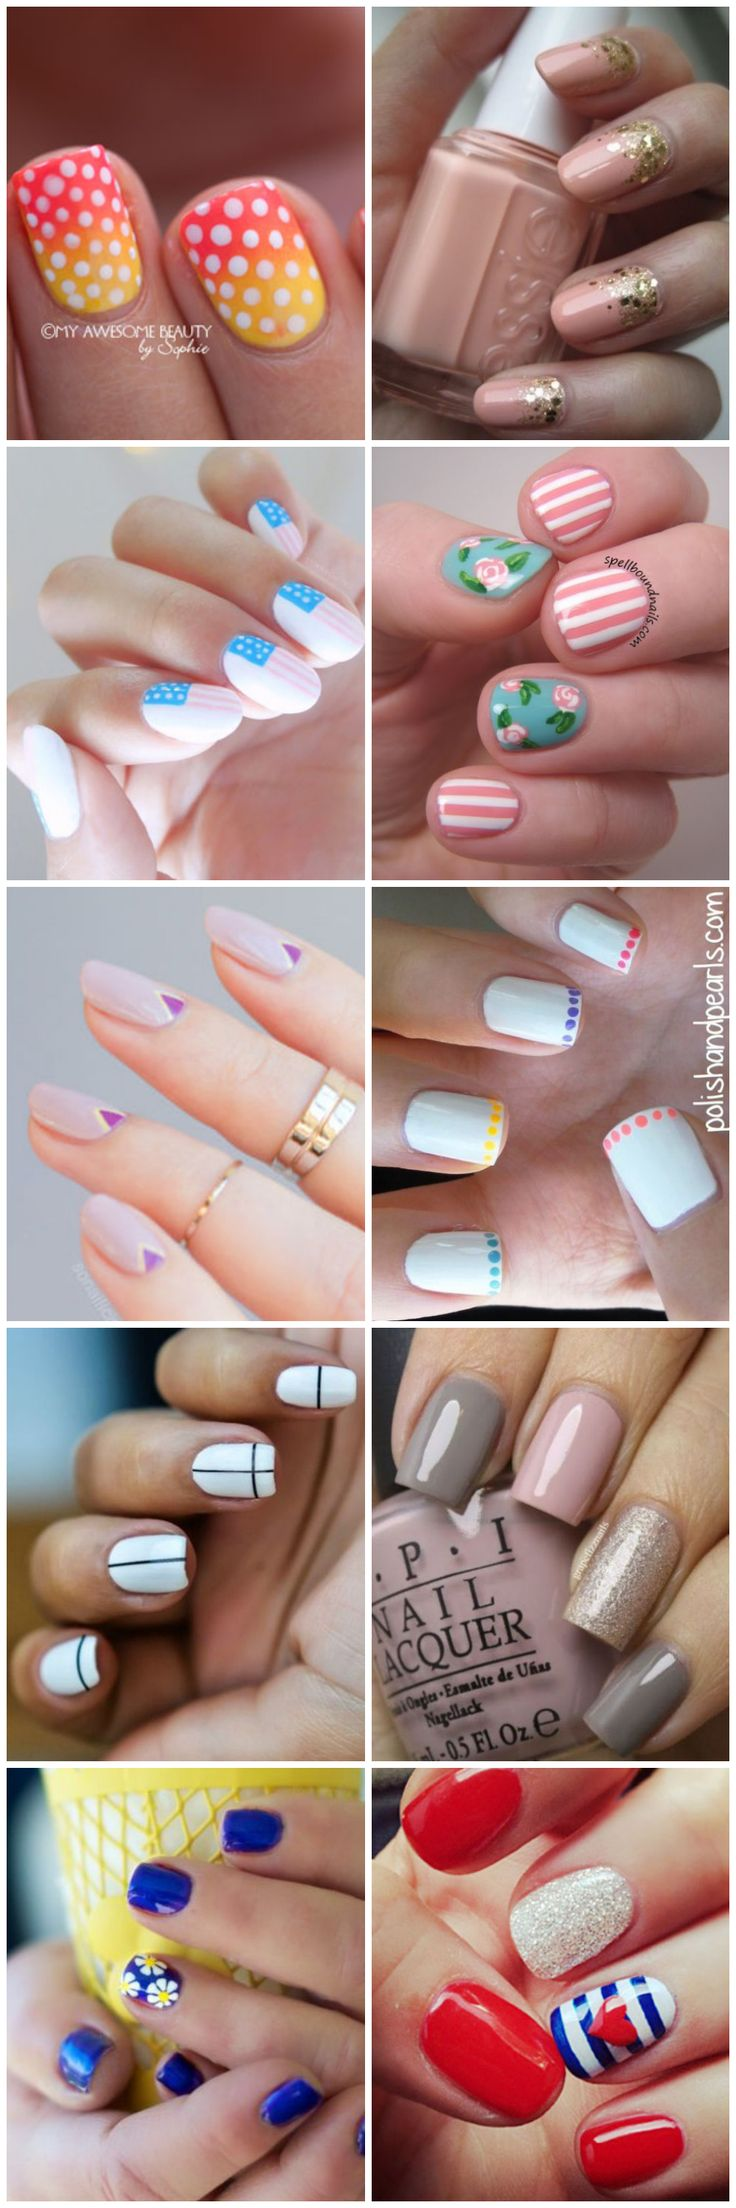 Watch - Hairbest and Beauty bright summer nail polishes video